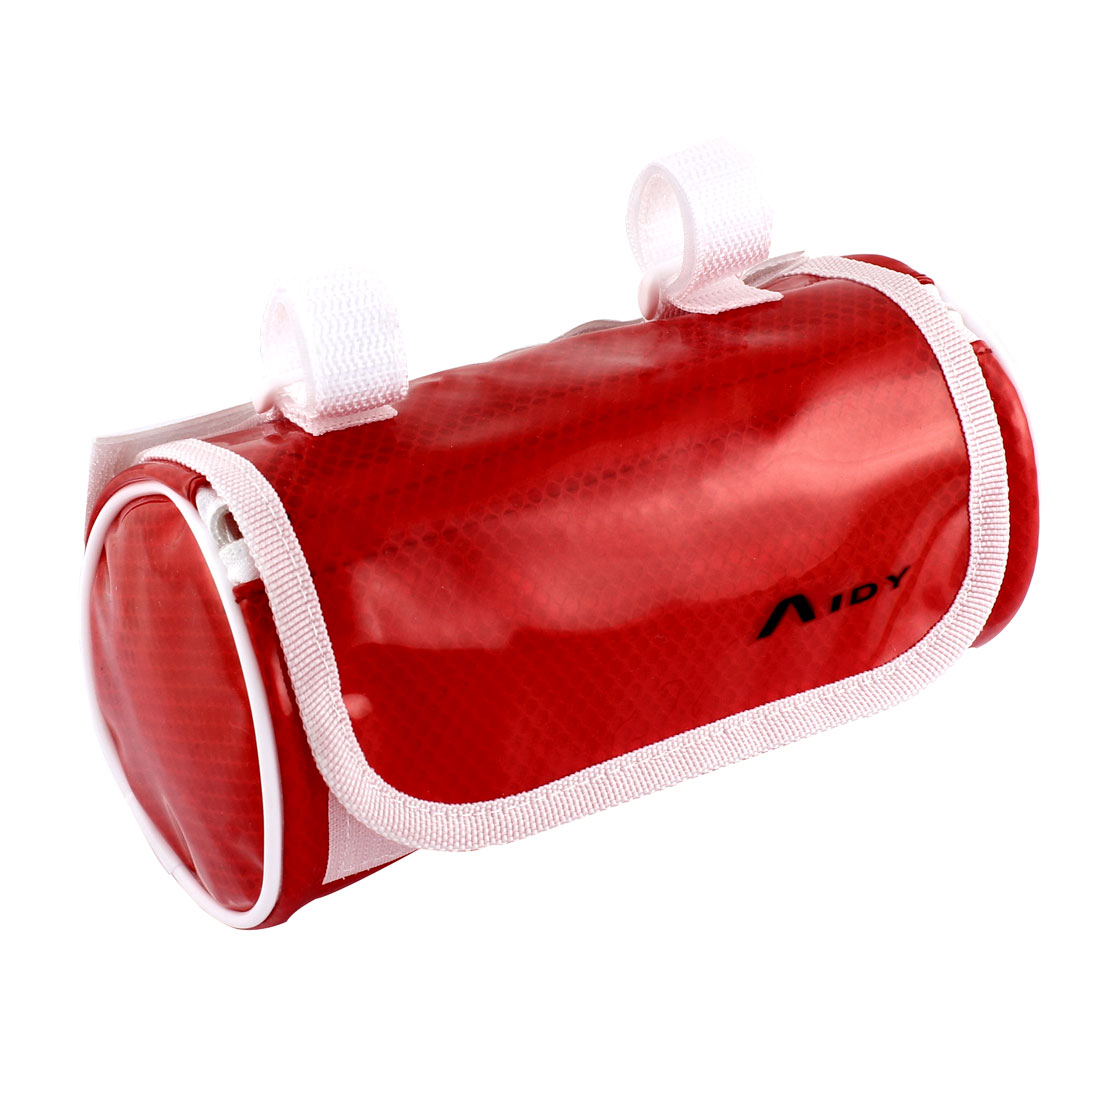 Cycling Bike Bicycle Front Pannier Basket Water Resistant Handlebar Bar Pouch Bag Clear Red